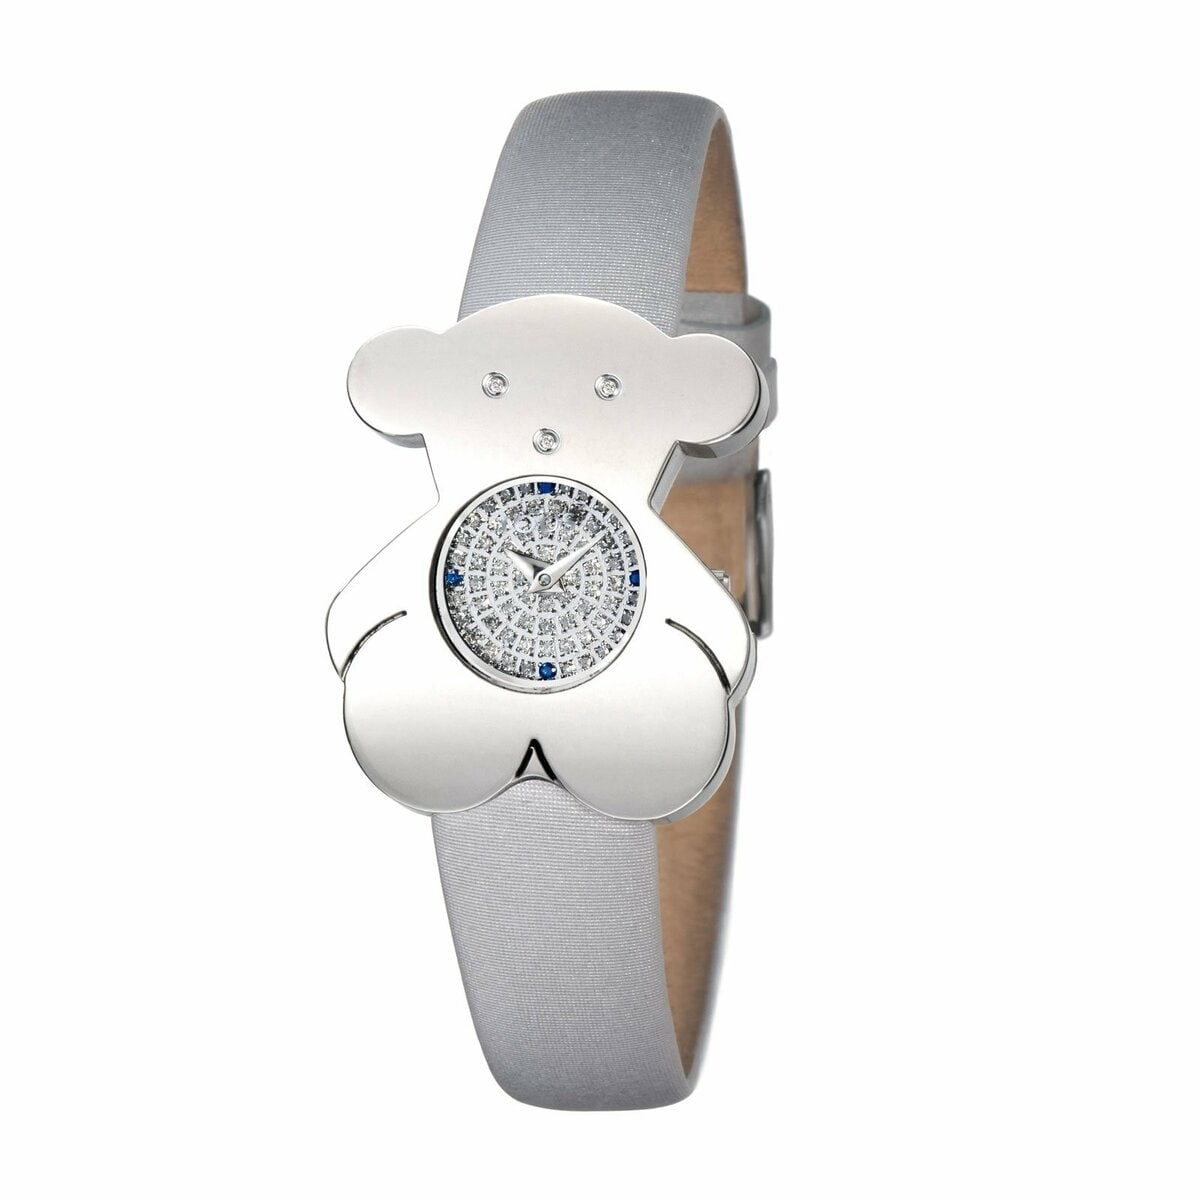 Steel Tousy Watch with Diamonds and gray Satin strap